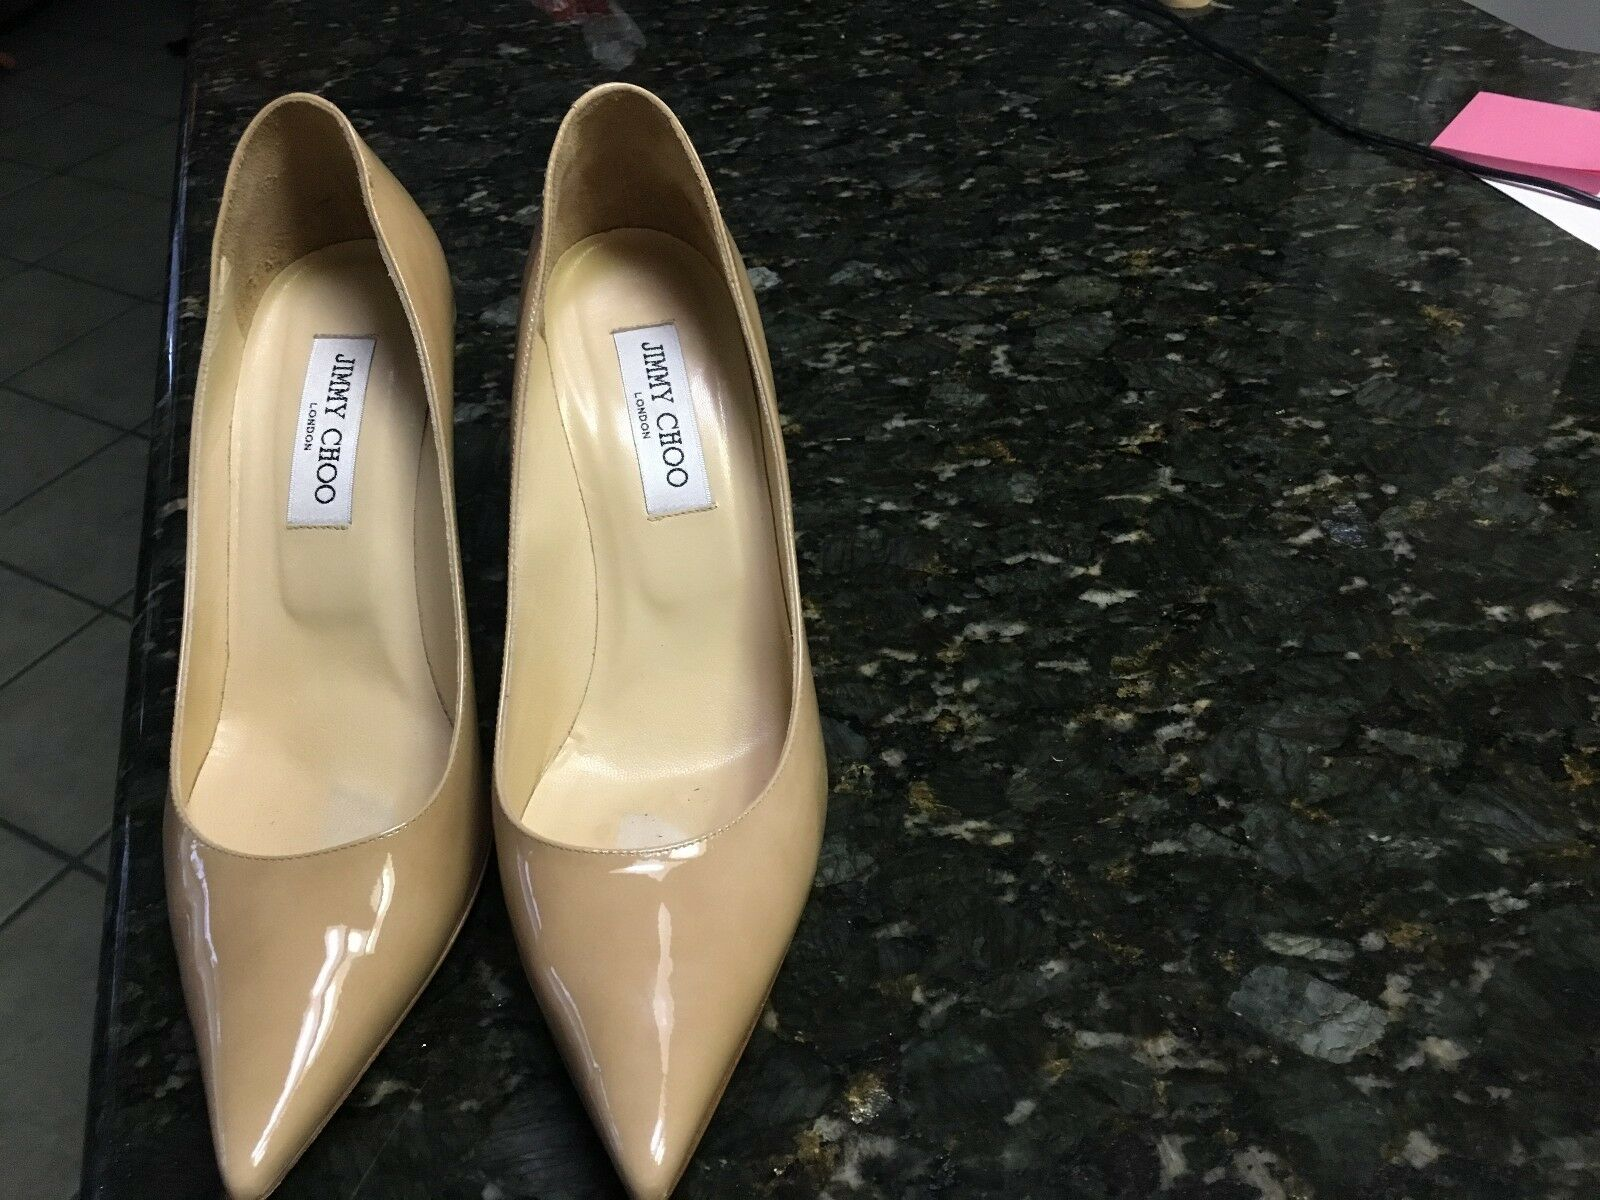 Jimmy Choo Beige Patent Leather  Agnes Pump - 40EU  10US  l'intera rete più bassa